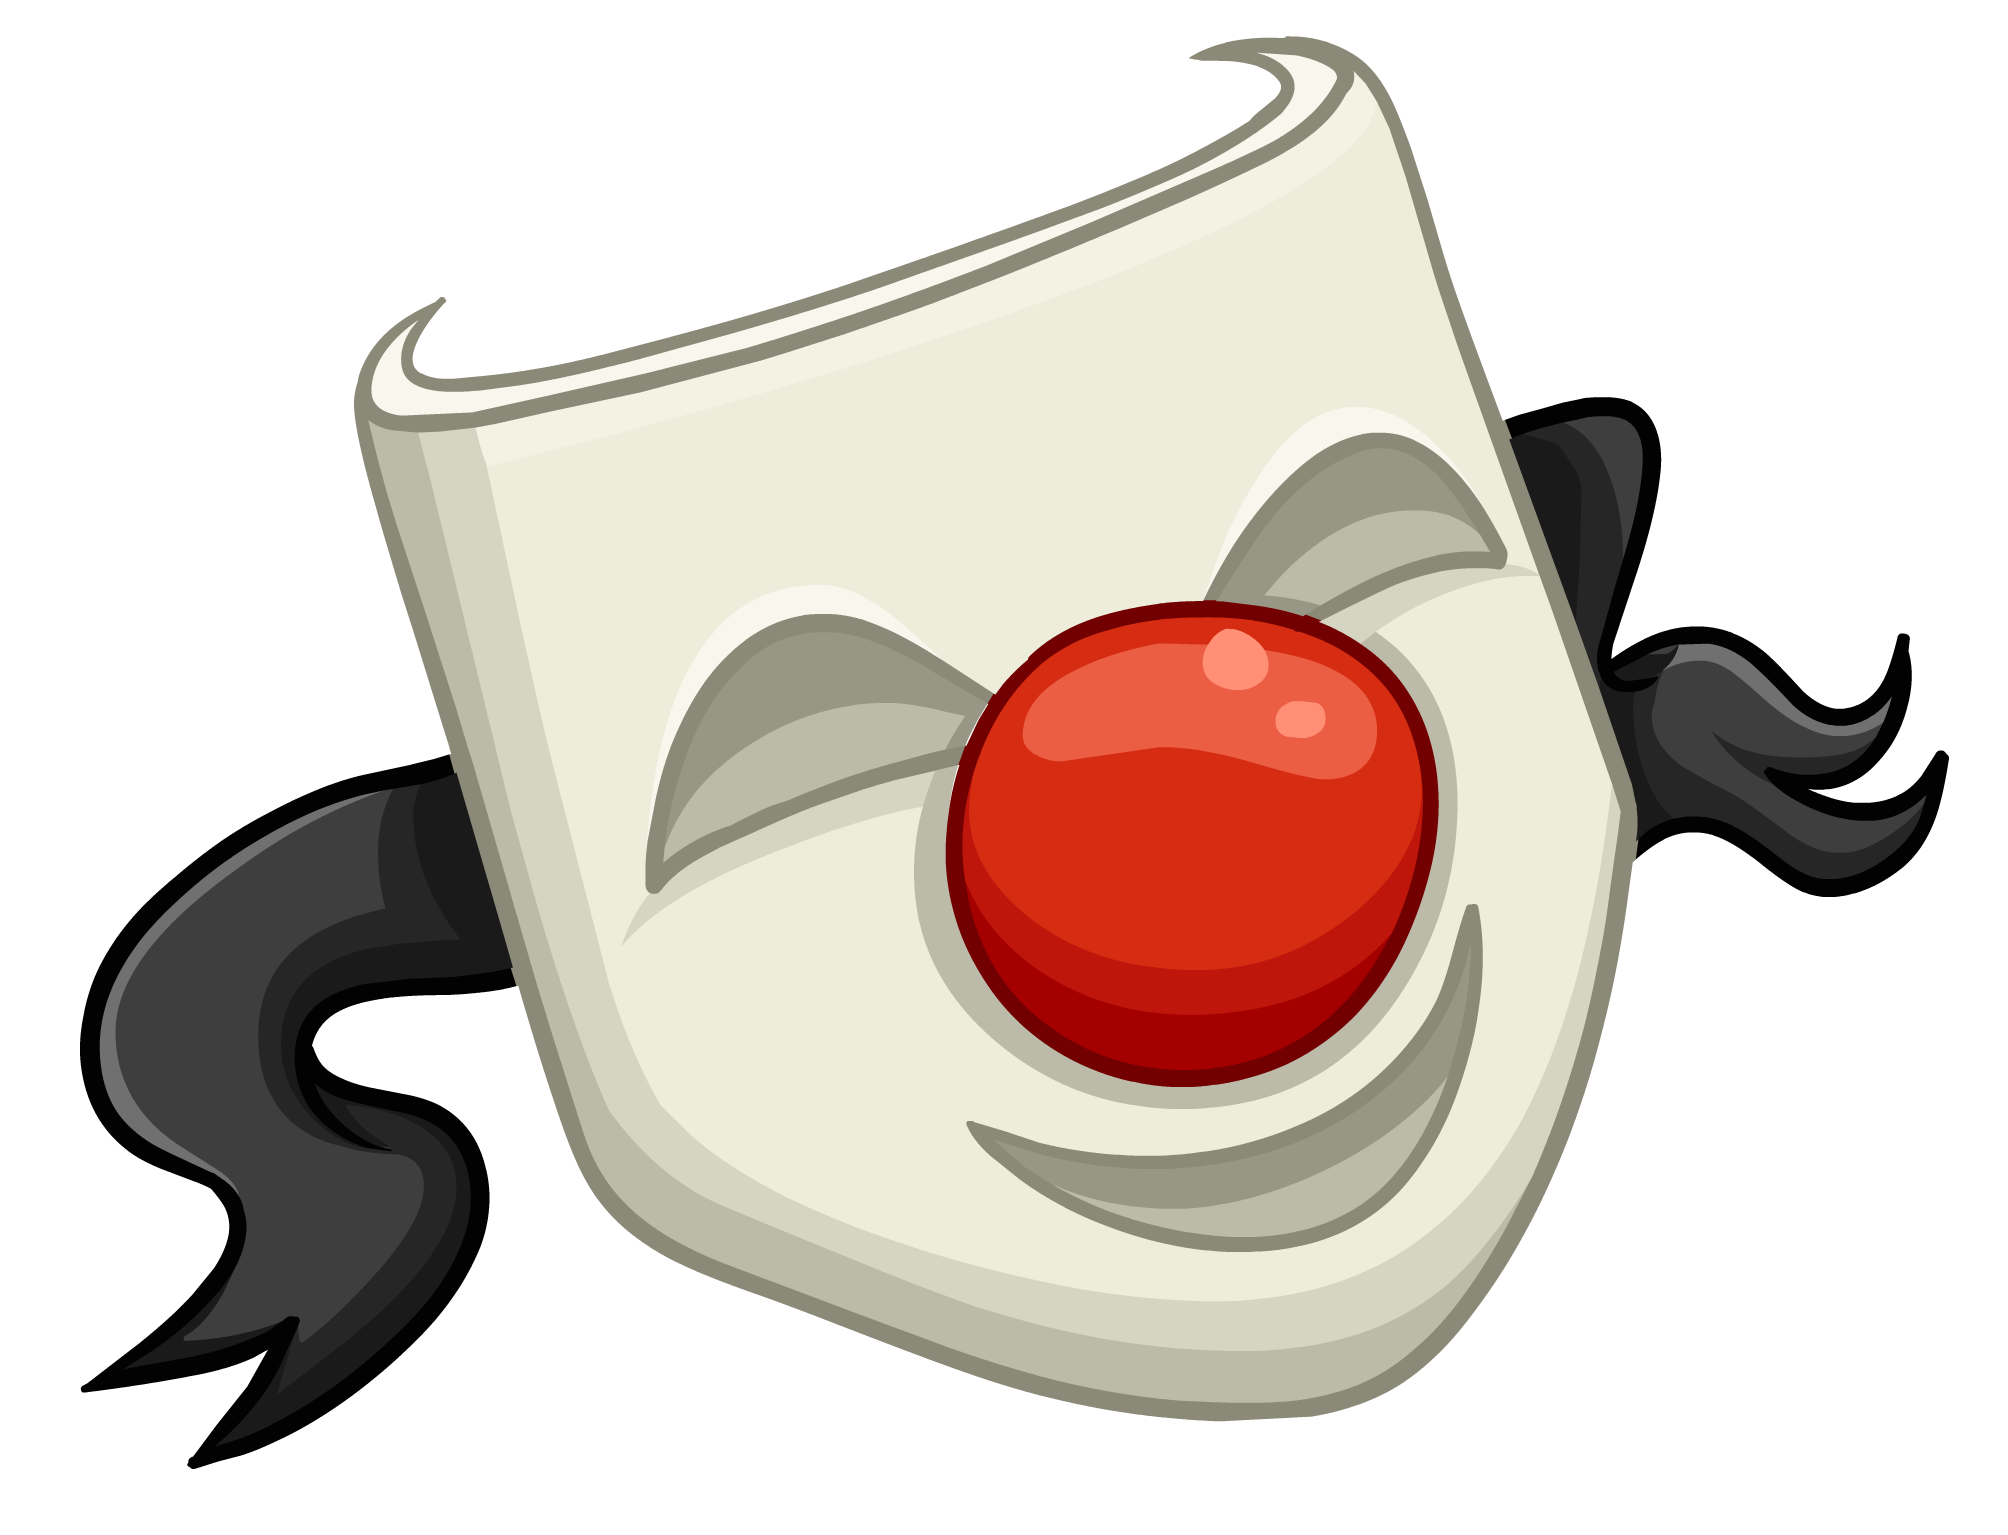 Red nose png. Image pin icon club